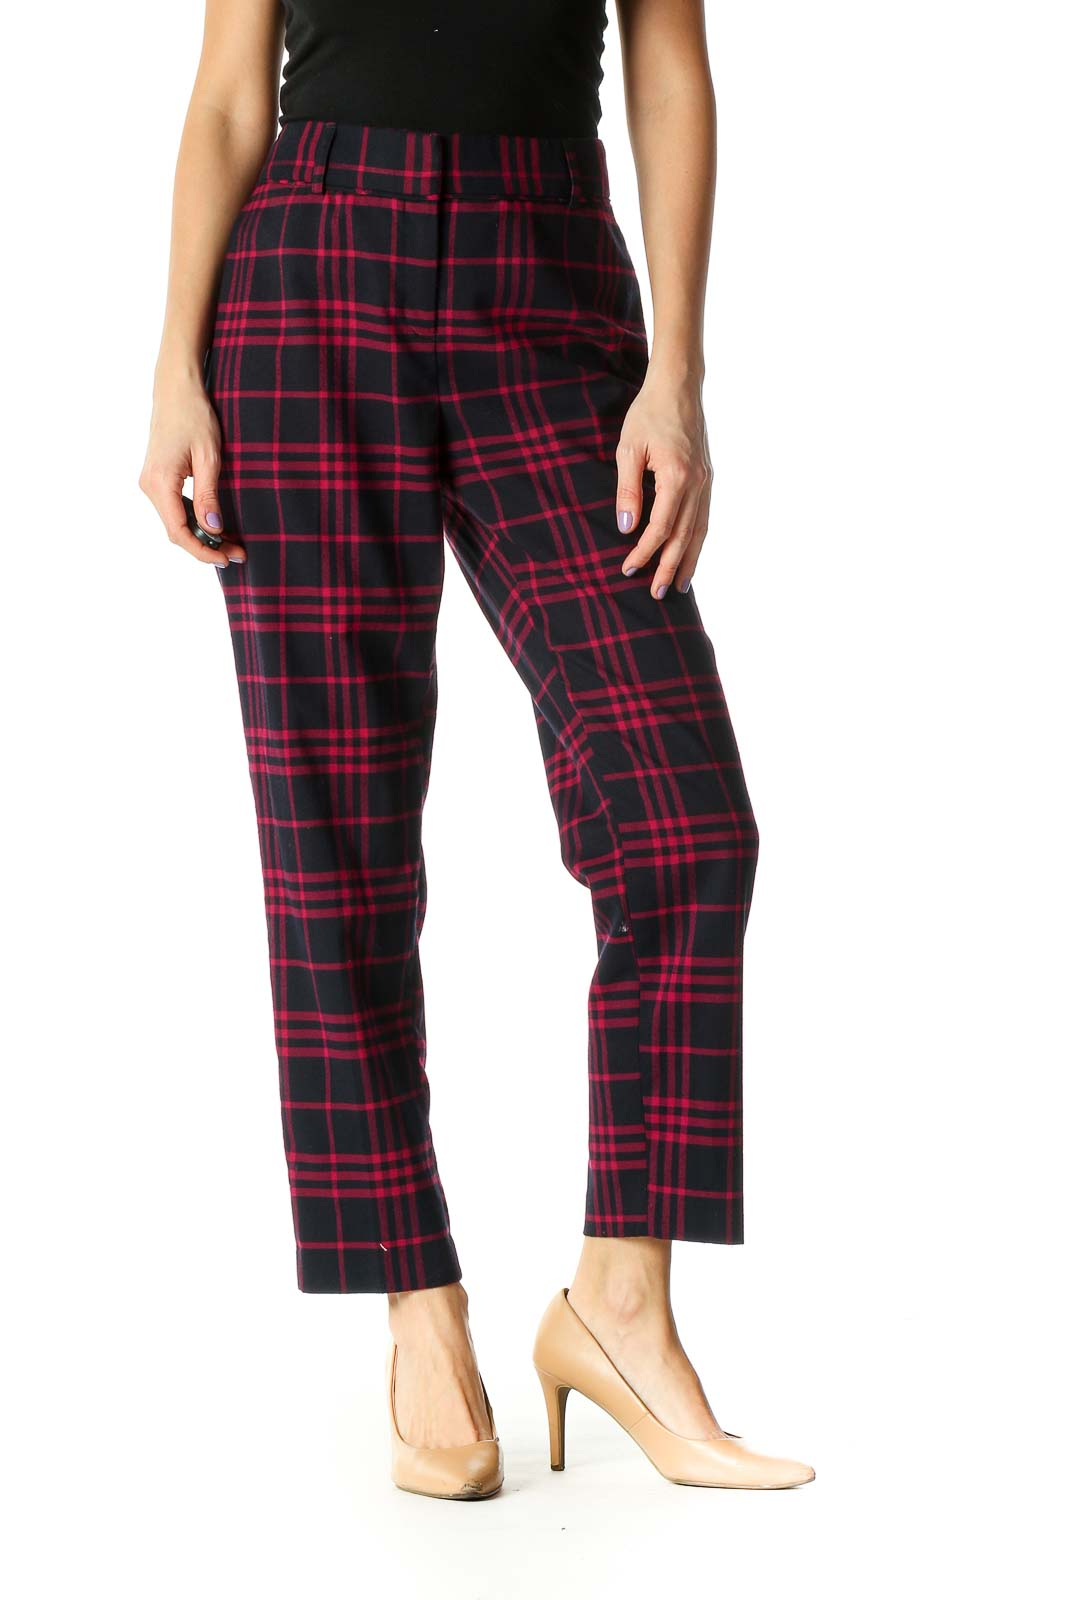 Blue Checkered Casual Trousers Front